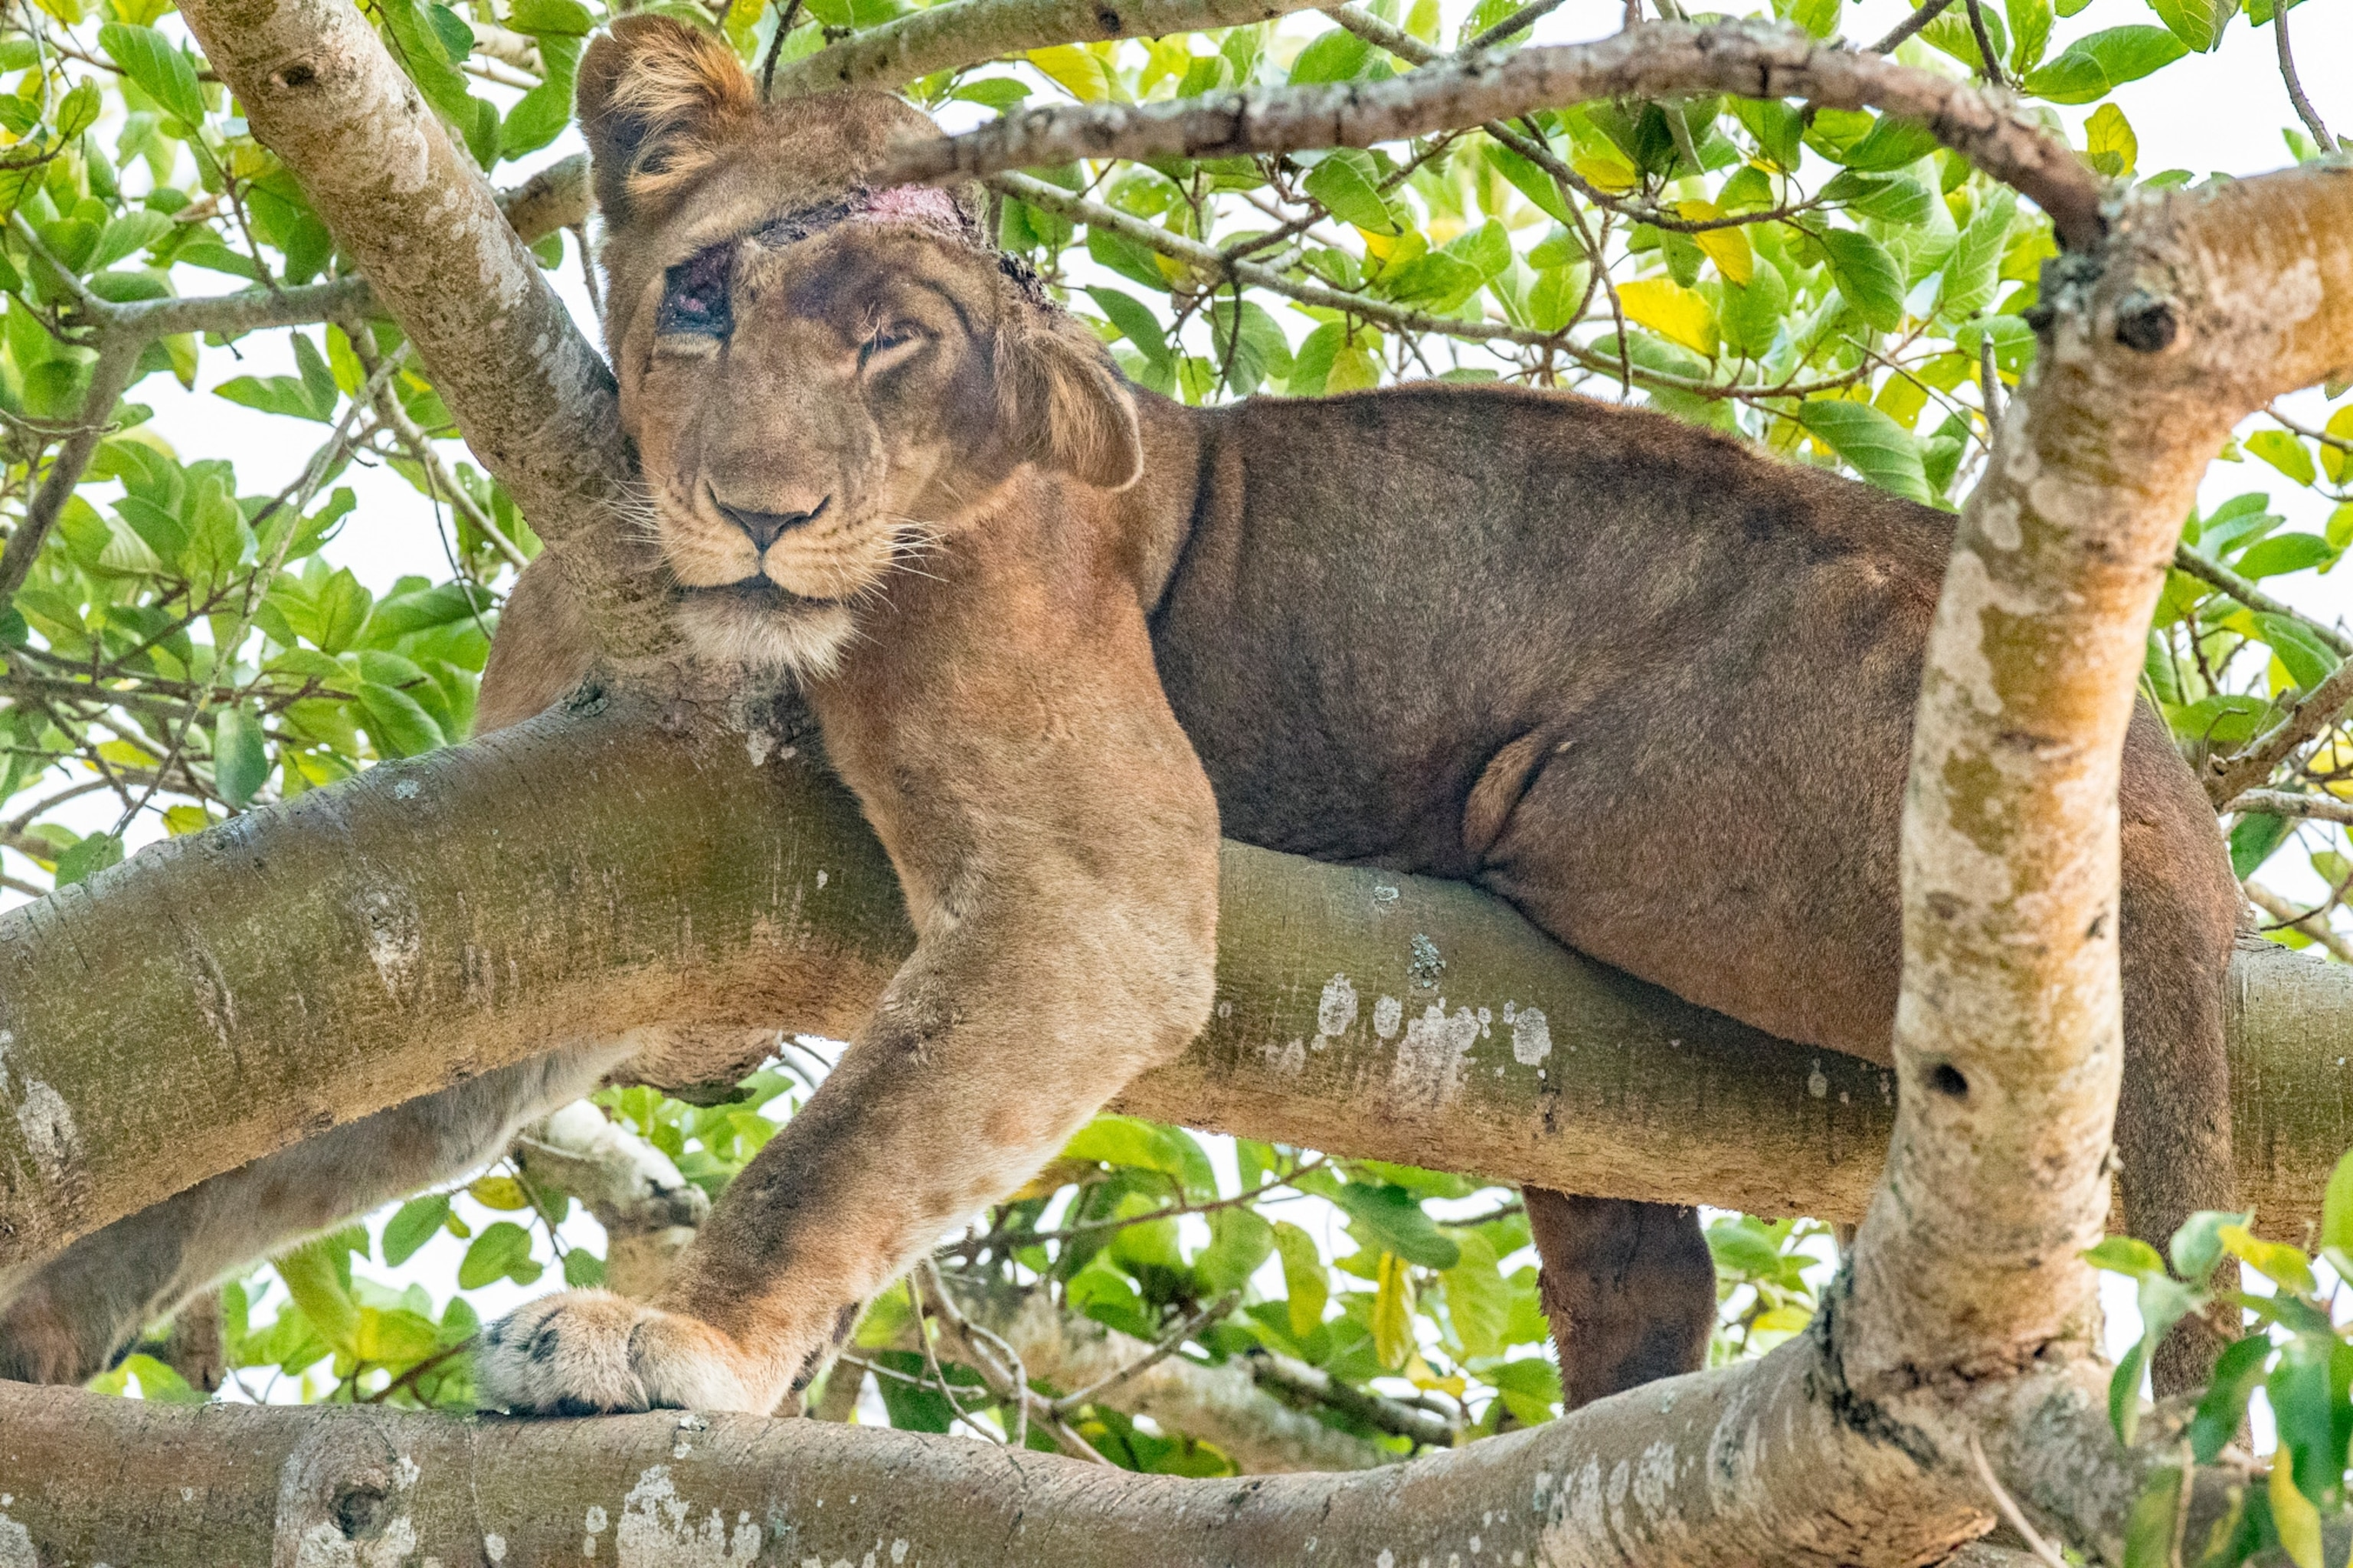 Petition: Punish Poachers Who Use Wire Snares To Destroy Wildlife